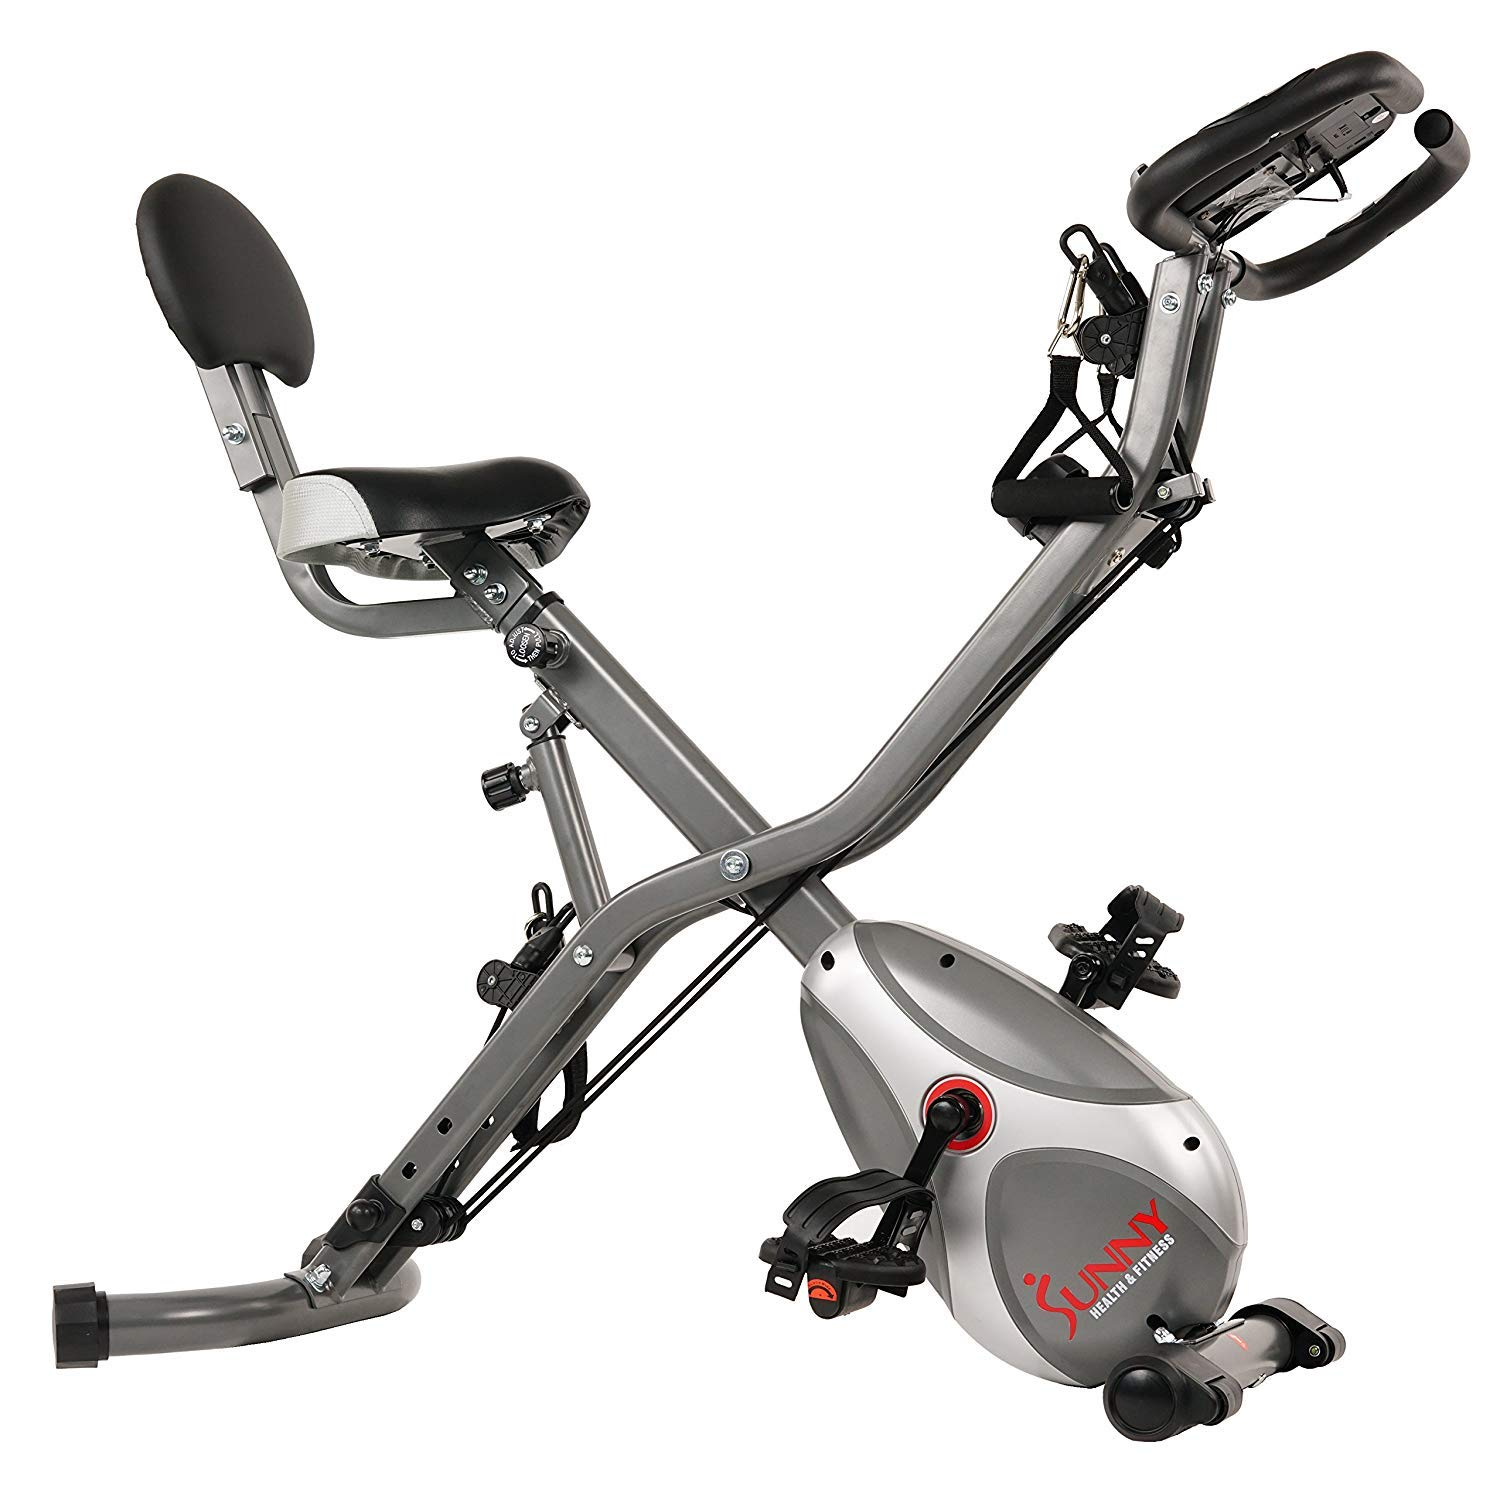 Sunny Health & Fitness Foldable Semi Recumbent Magnetic Upright Exercise Bike w/Pulse Rate Monitoring, Adjustable Arm Resistance Bands and LCD Monitor - SF-B2710 by Sunny Health & Fitness (Image #2)